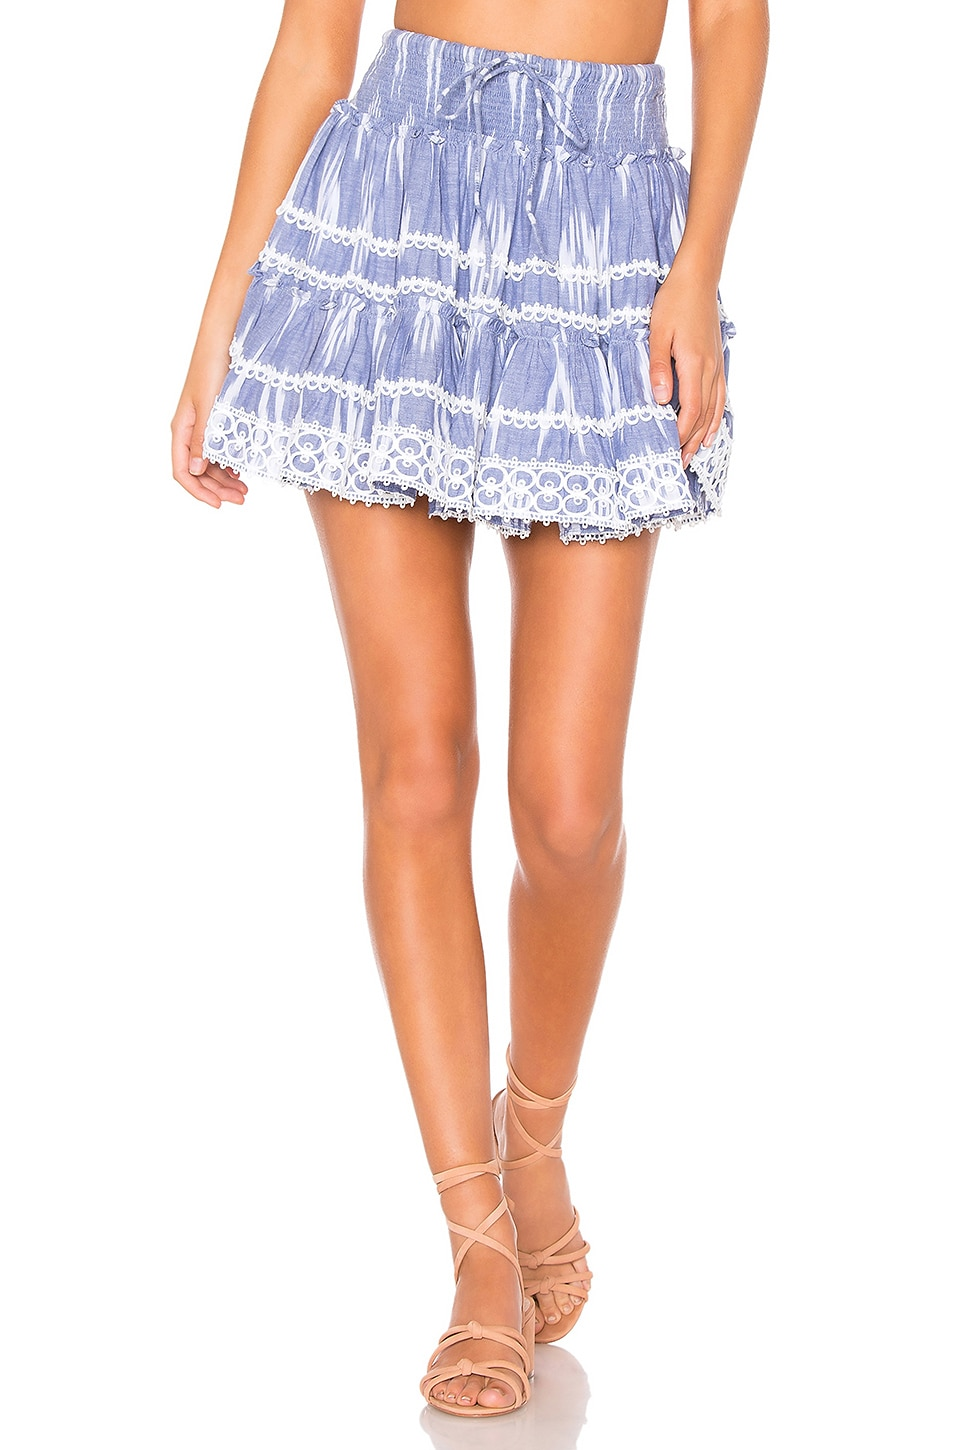 HEMANT AND NANDITA Mini Skirt in Blue